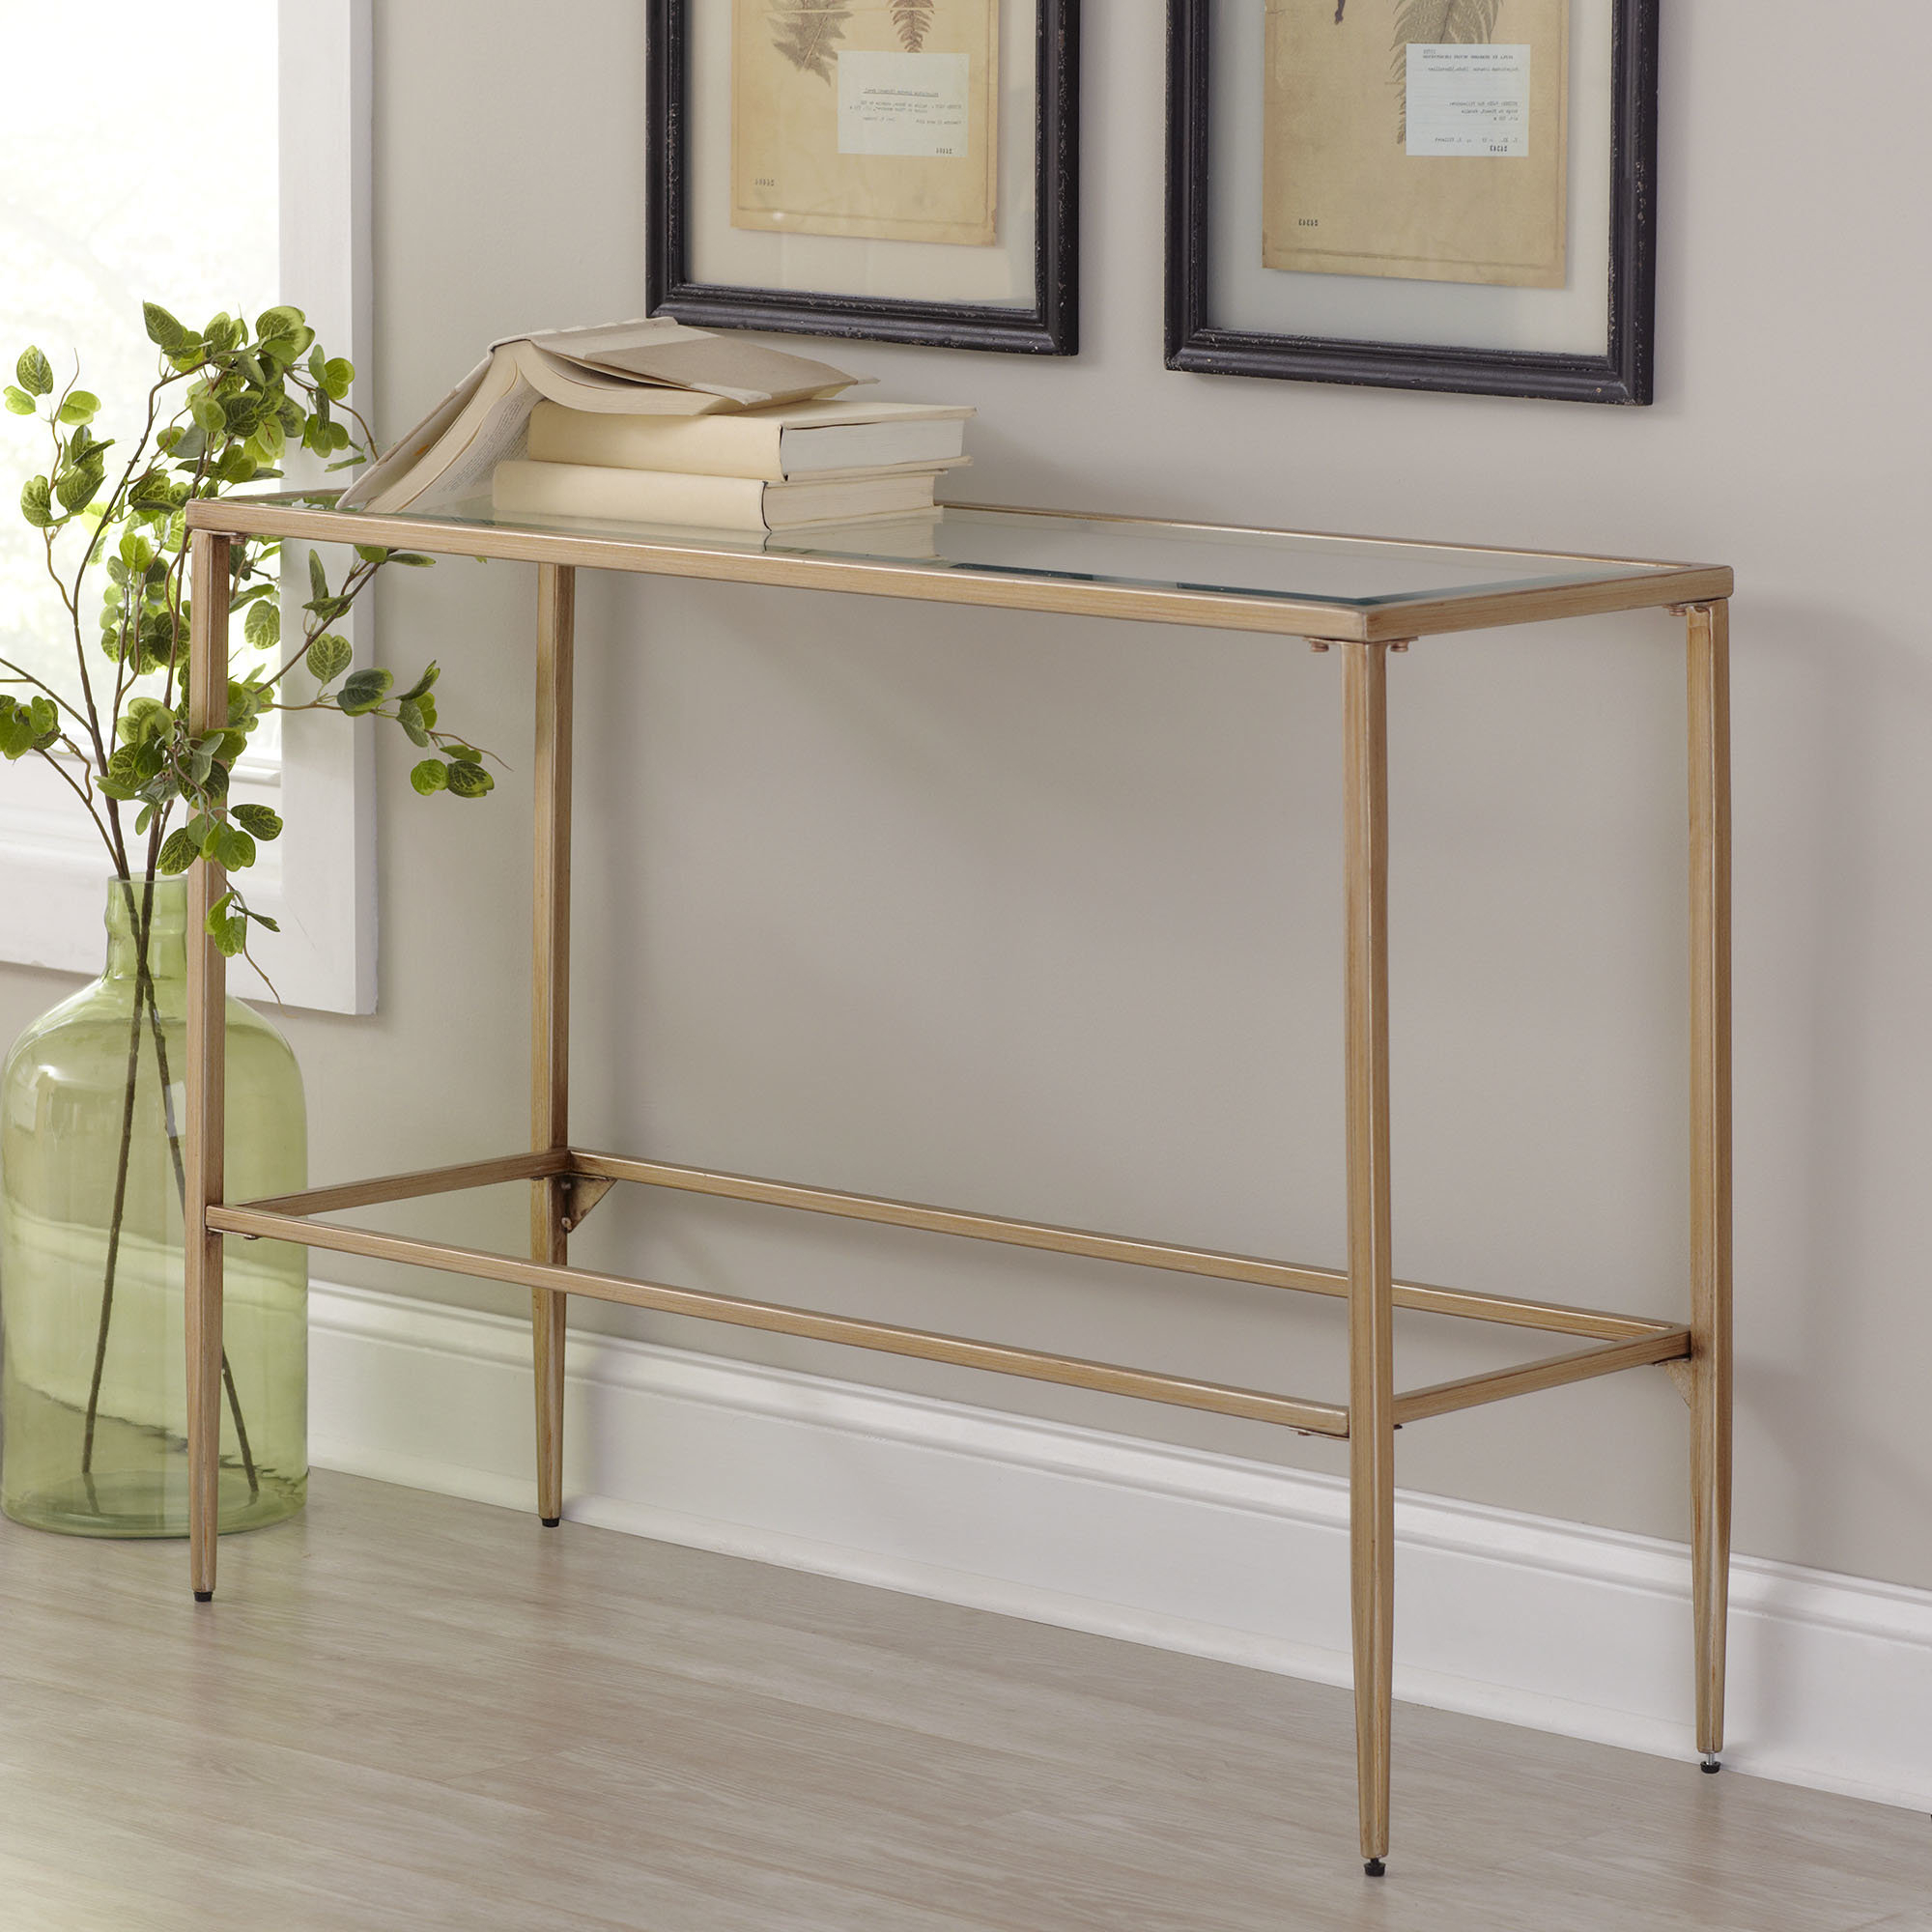 Narrow Gold Console Table | Wayfair Throughout Natural Wood Mirrored Media Console Tables (View 12 of 20)